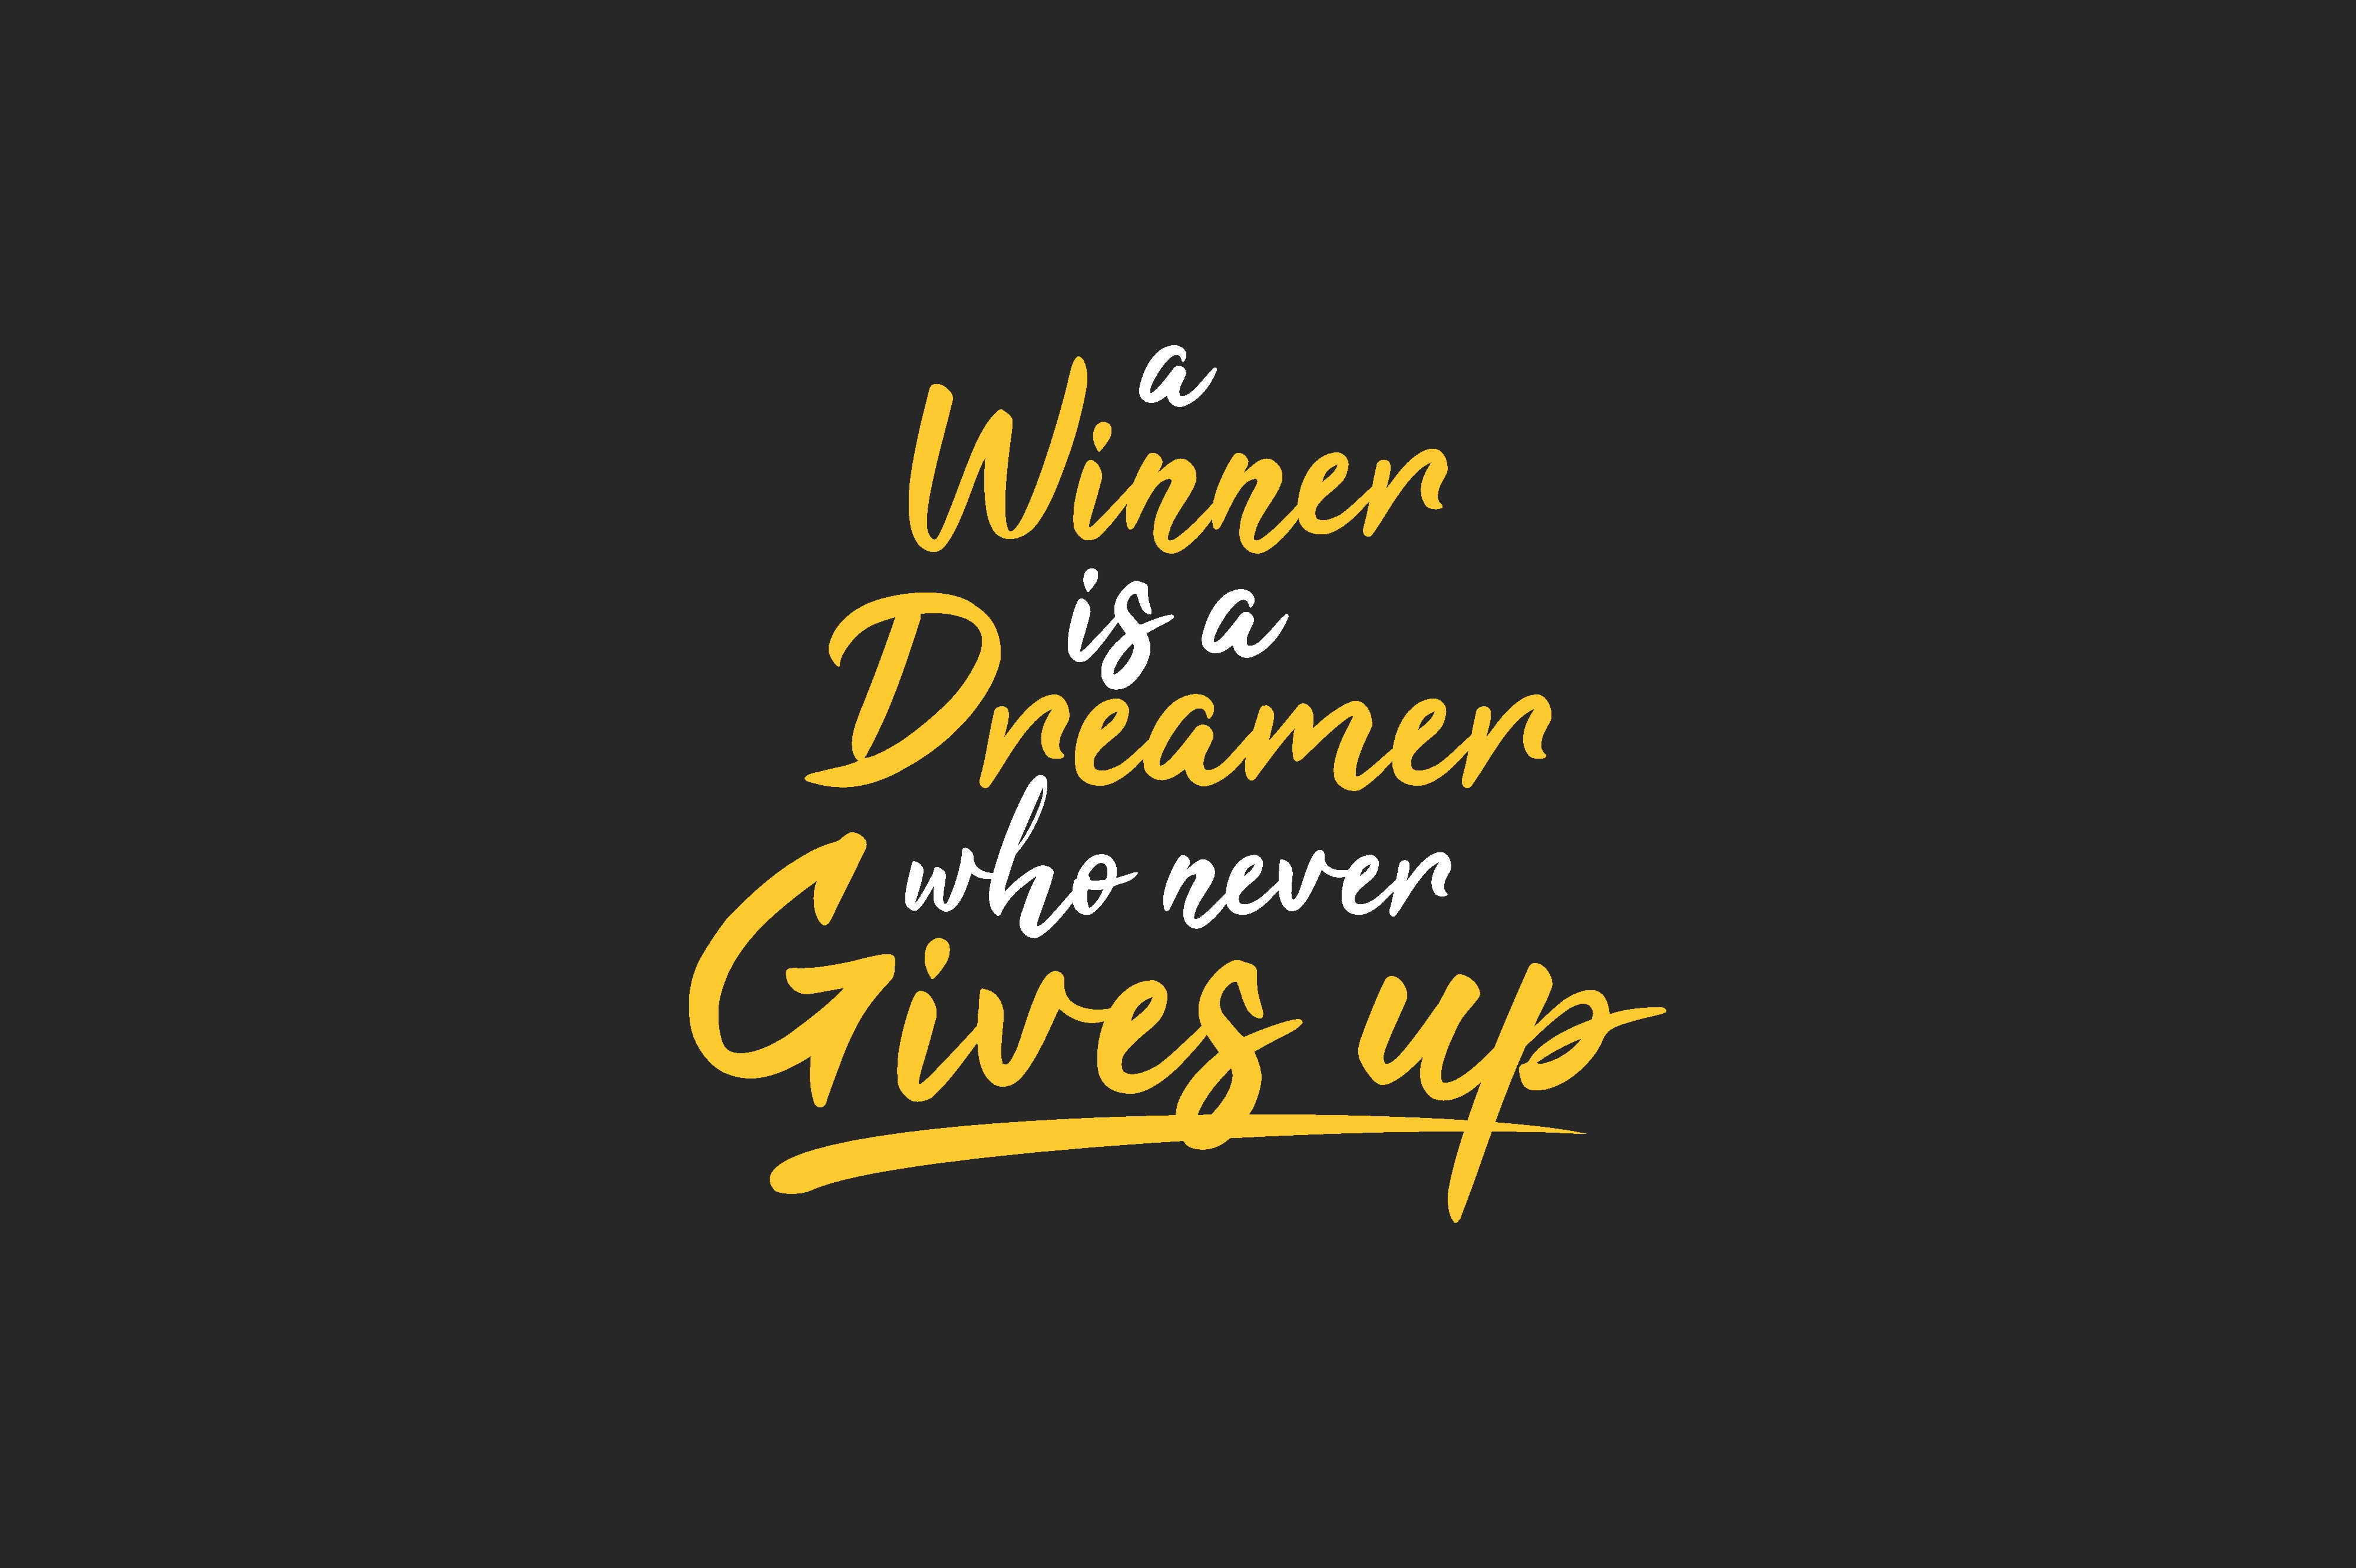 Download Free A Winner Is A Dreamer Who Never Gives Up Graphic By Chairul Ma for Cricut Explore, Silhouette and other cutting machines.